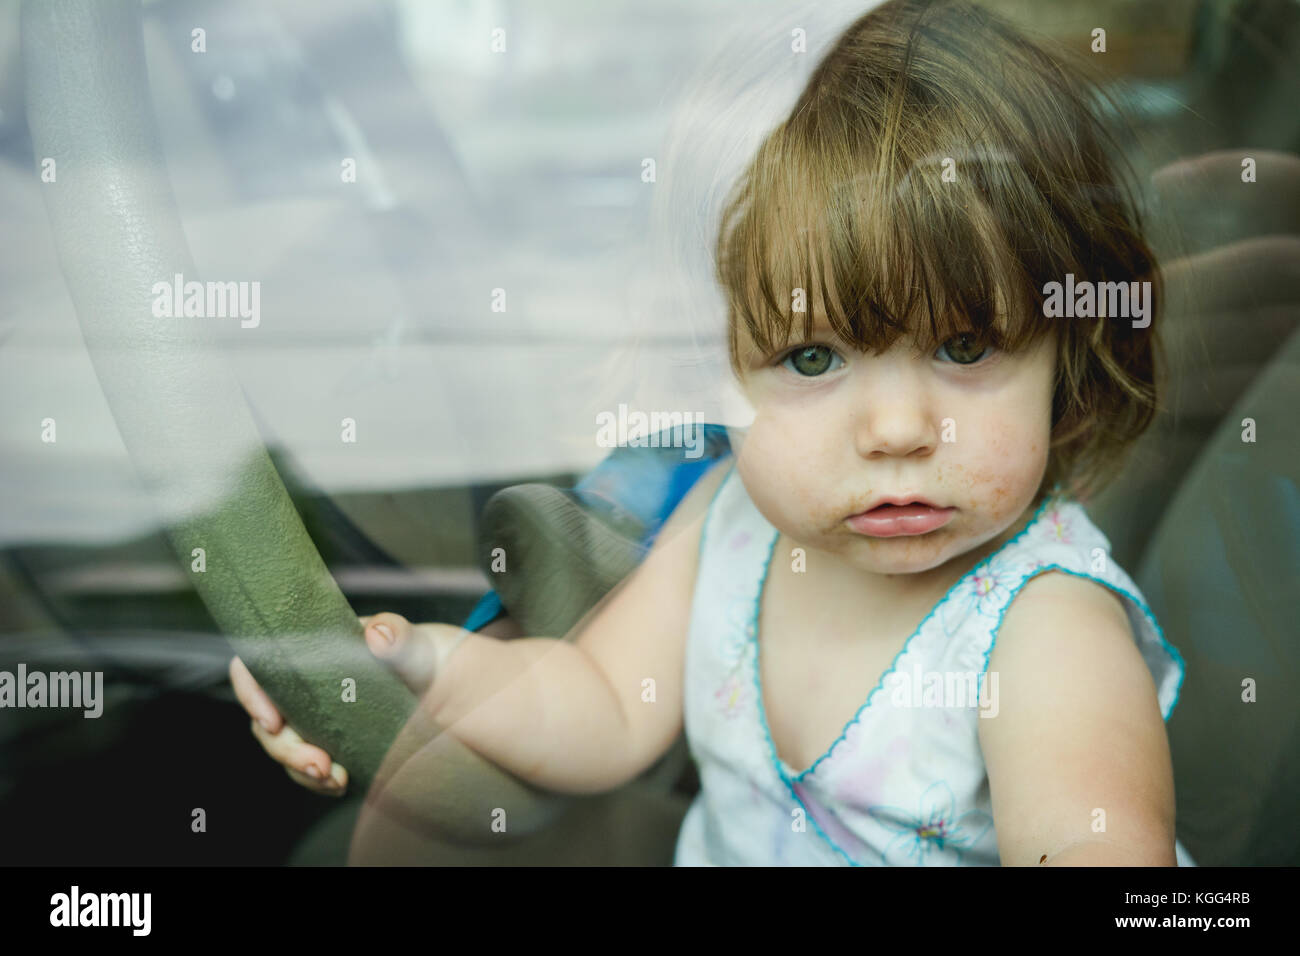 Child looking out of a car window, holding on to steering wheel - Stock Image